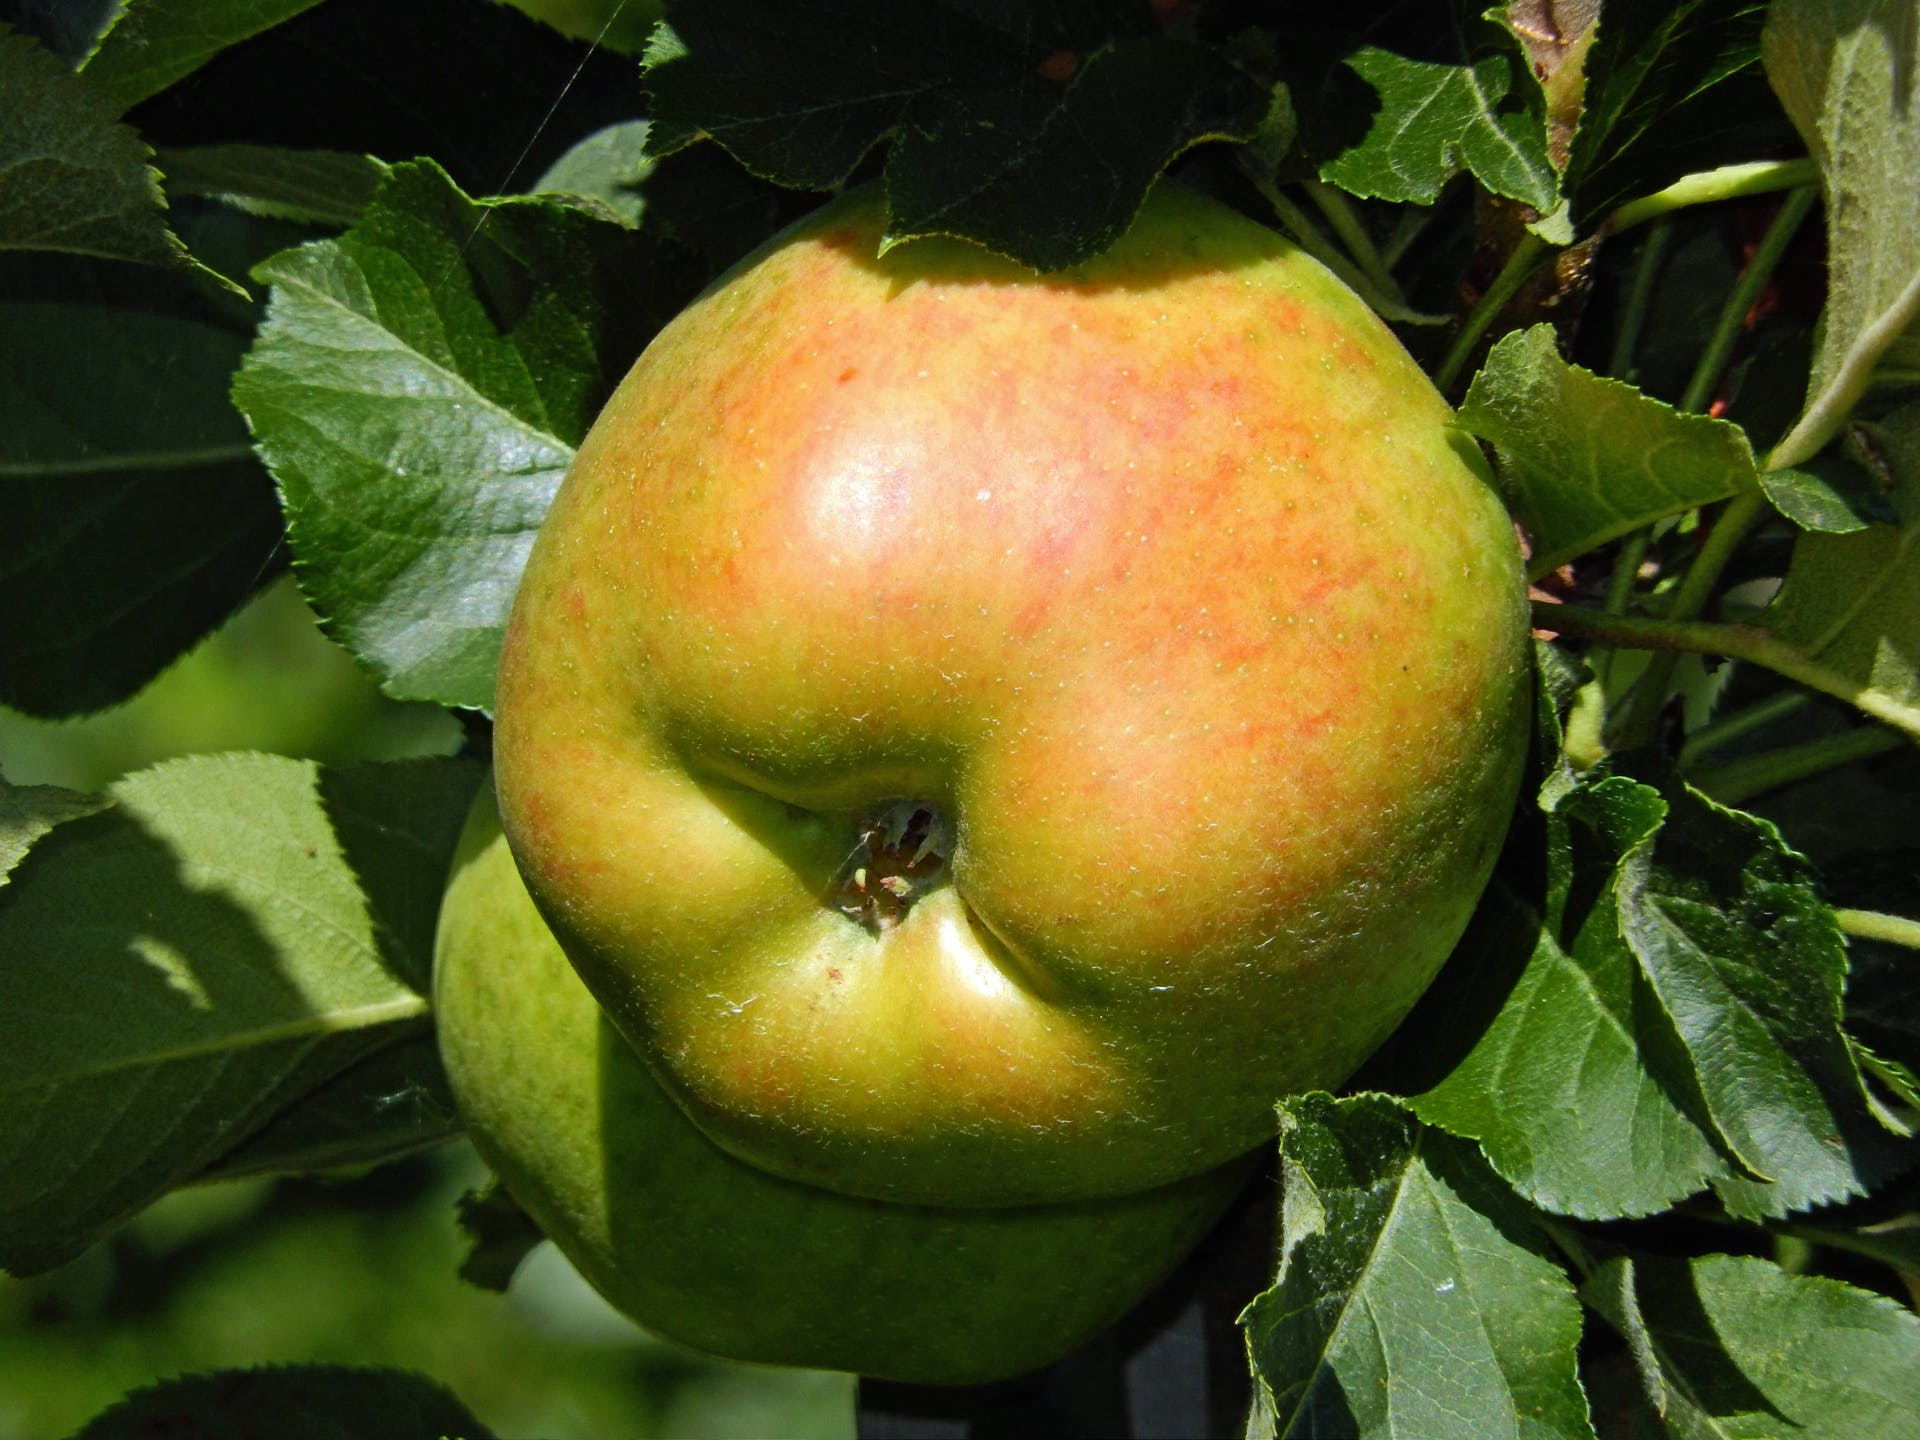 Free stock photo of food, healthy, nature, apple